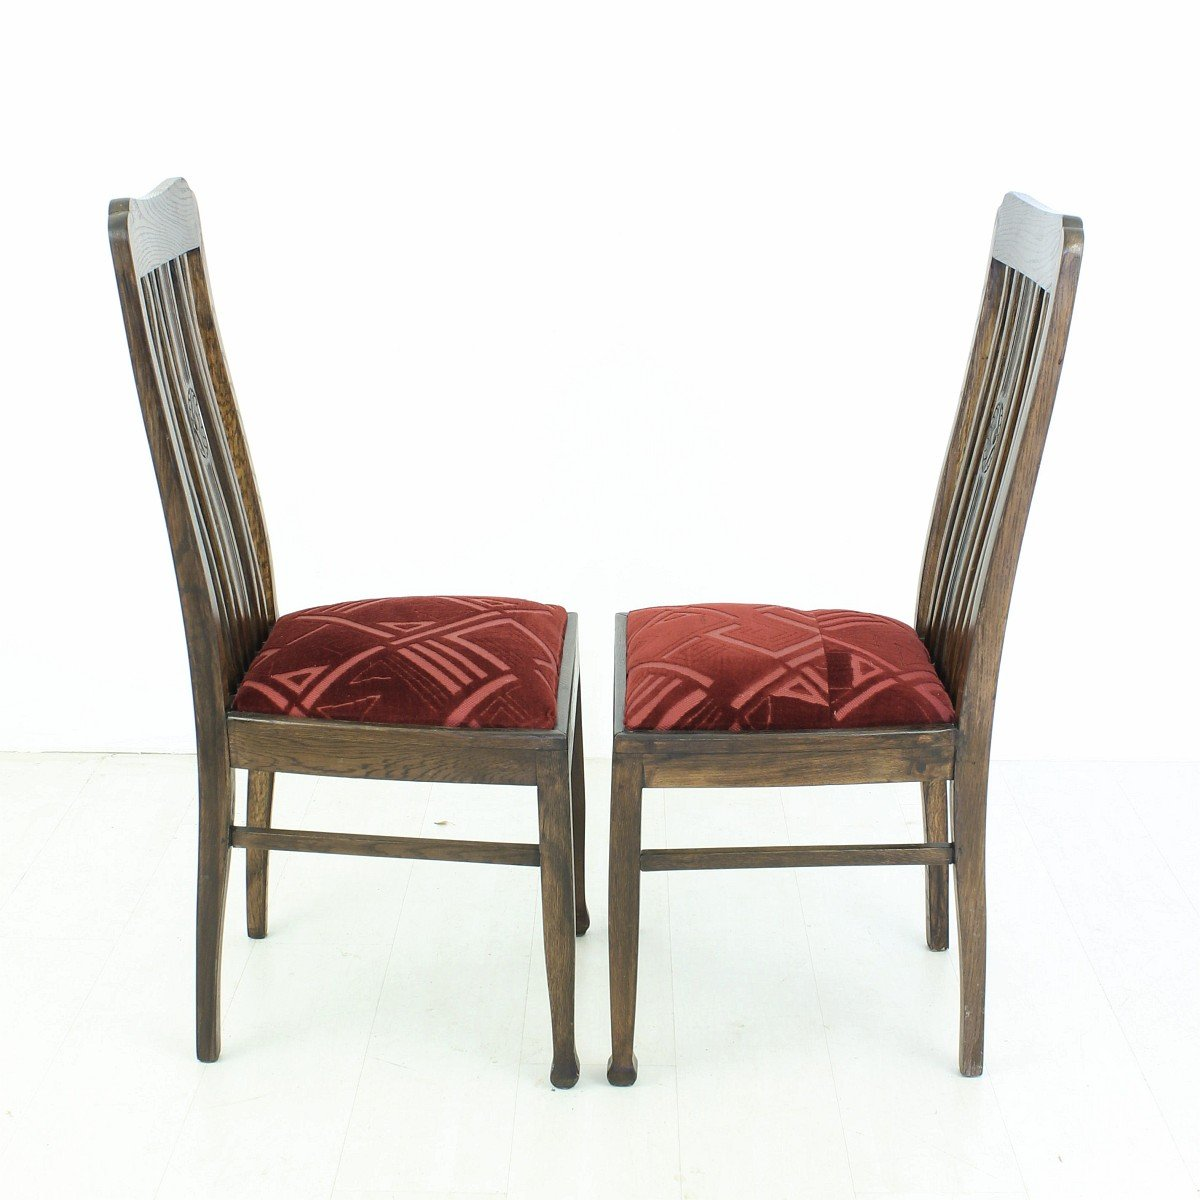 vintage oak dining chairs folding chair video 1920s set of 2 for sale at pamono